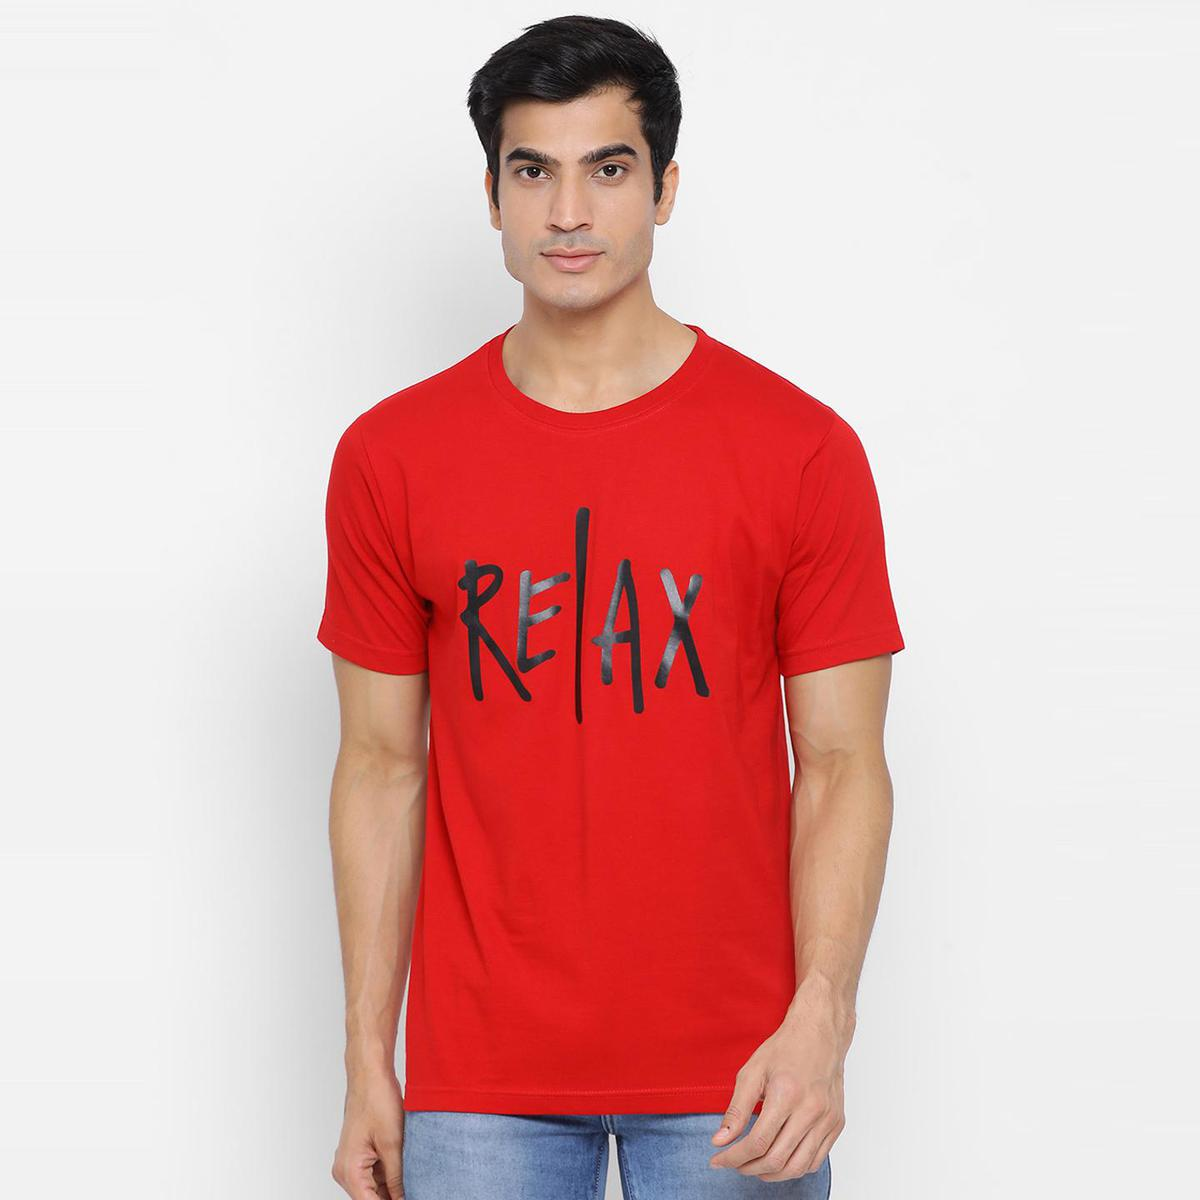 YOLOCLAN - Red Colored Men Relax Cotton T-shirt